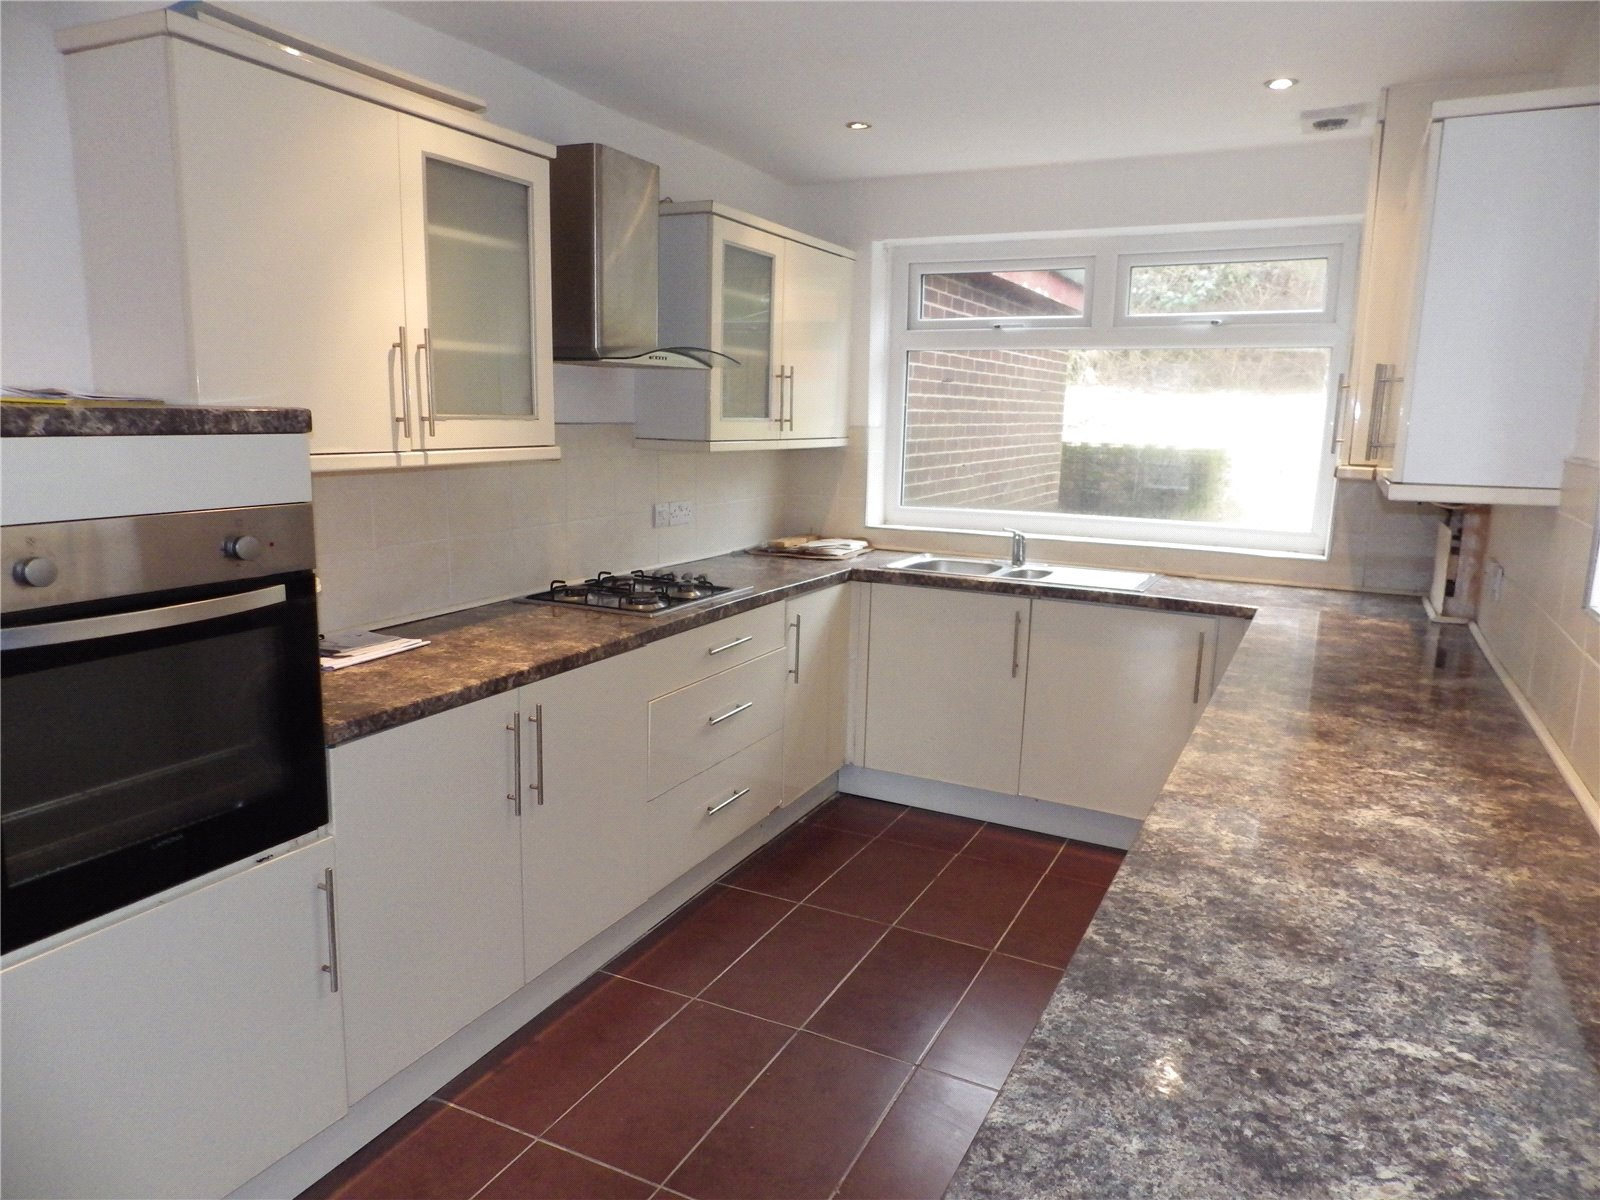 3 Bedrooms Detached Bungalow for sale in Valley Close, Mossley, Ashton-under-lyne, Lancashire, OL5